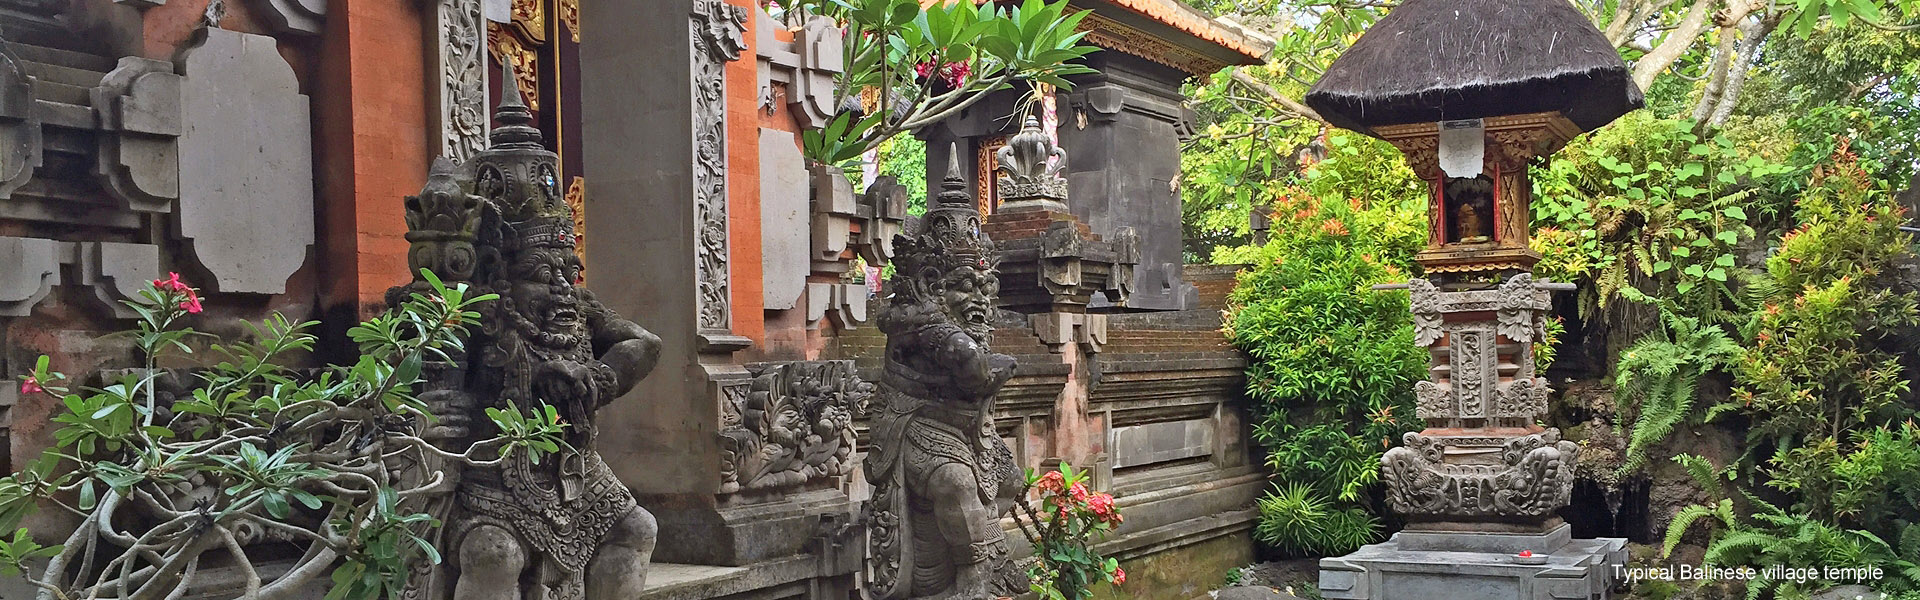 A typical Balinese village temple